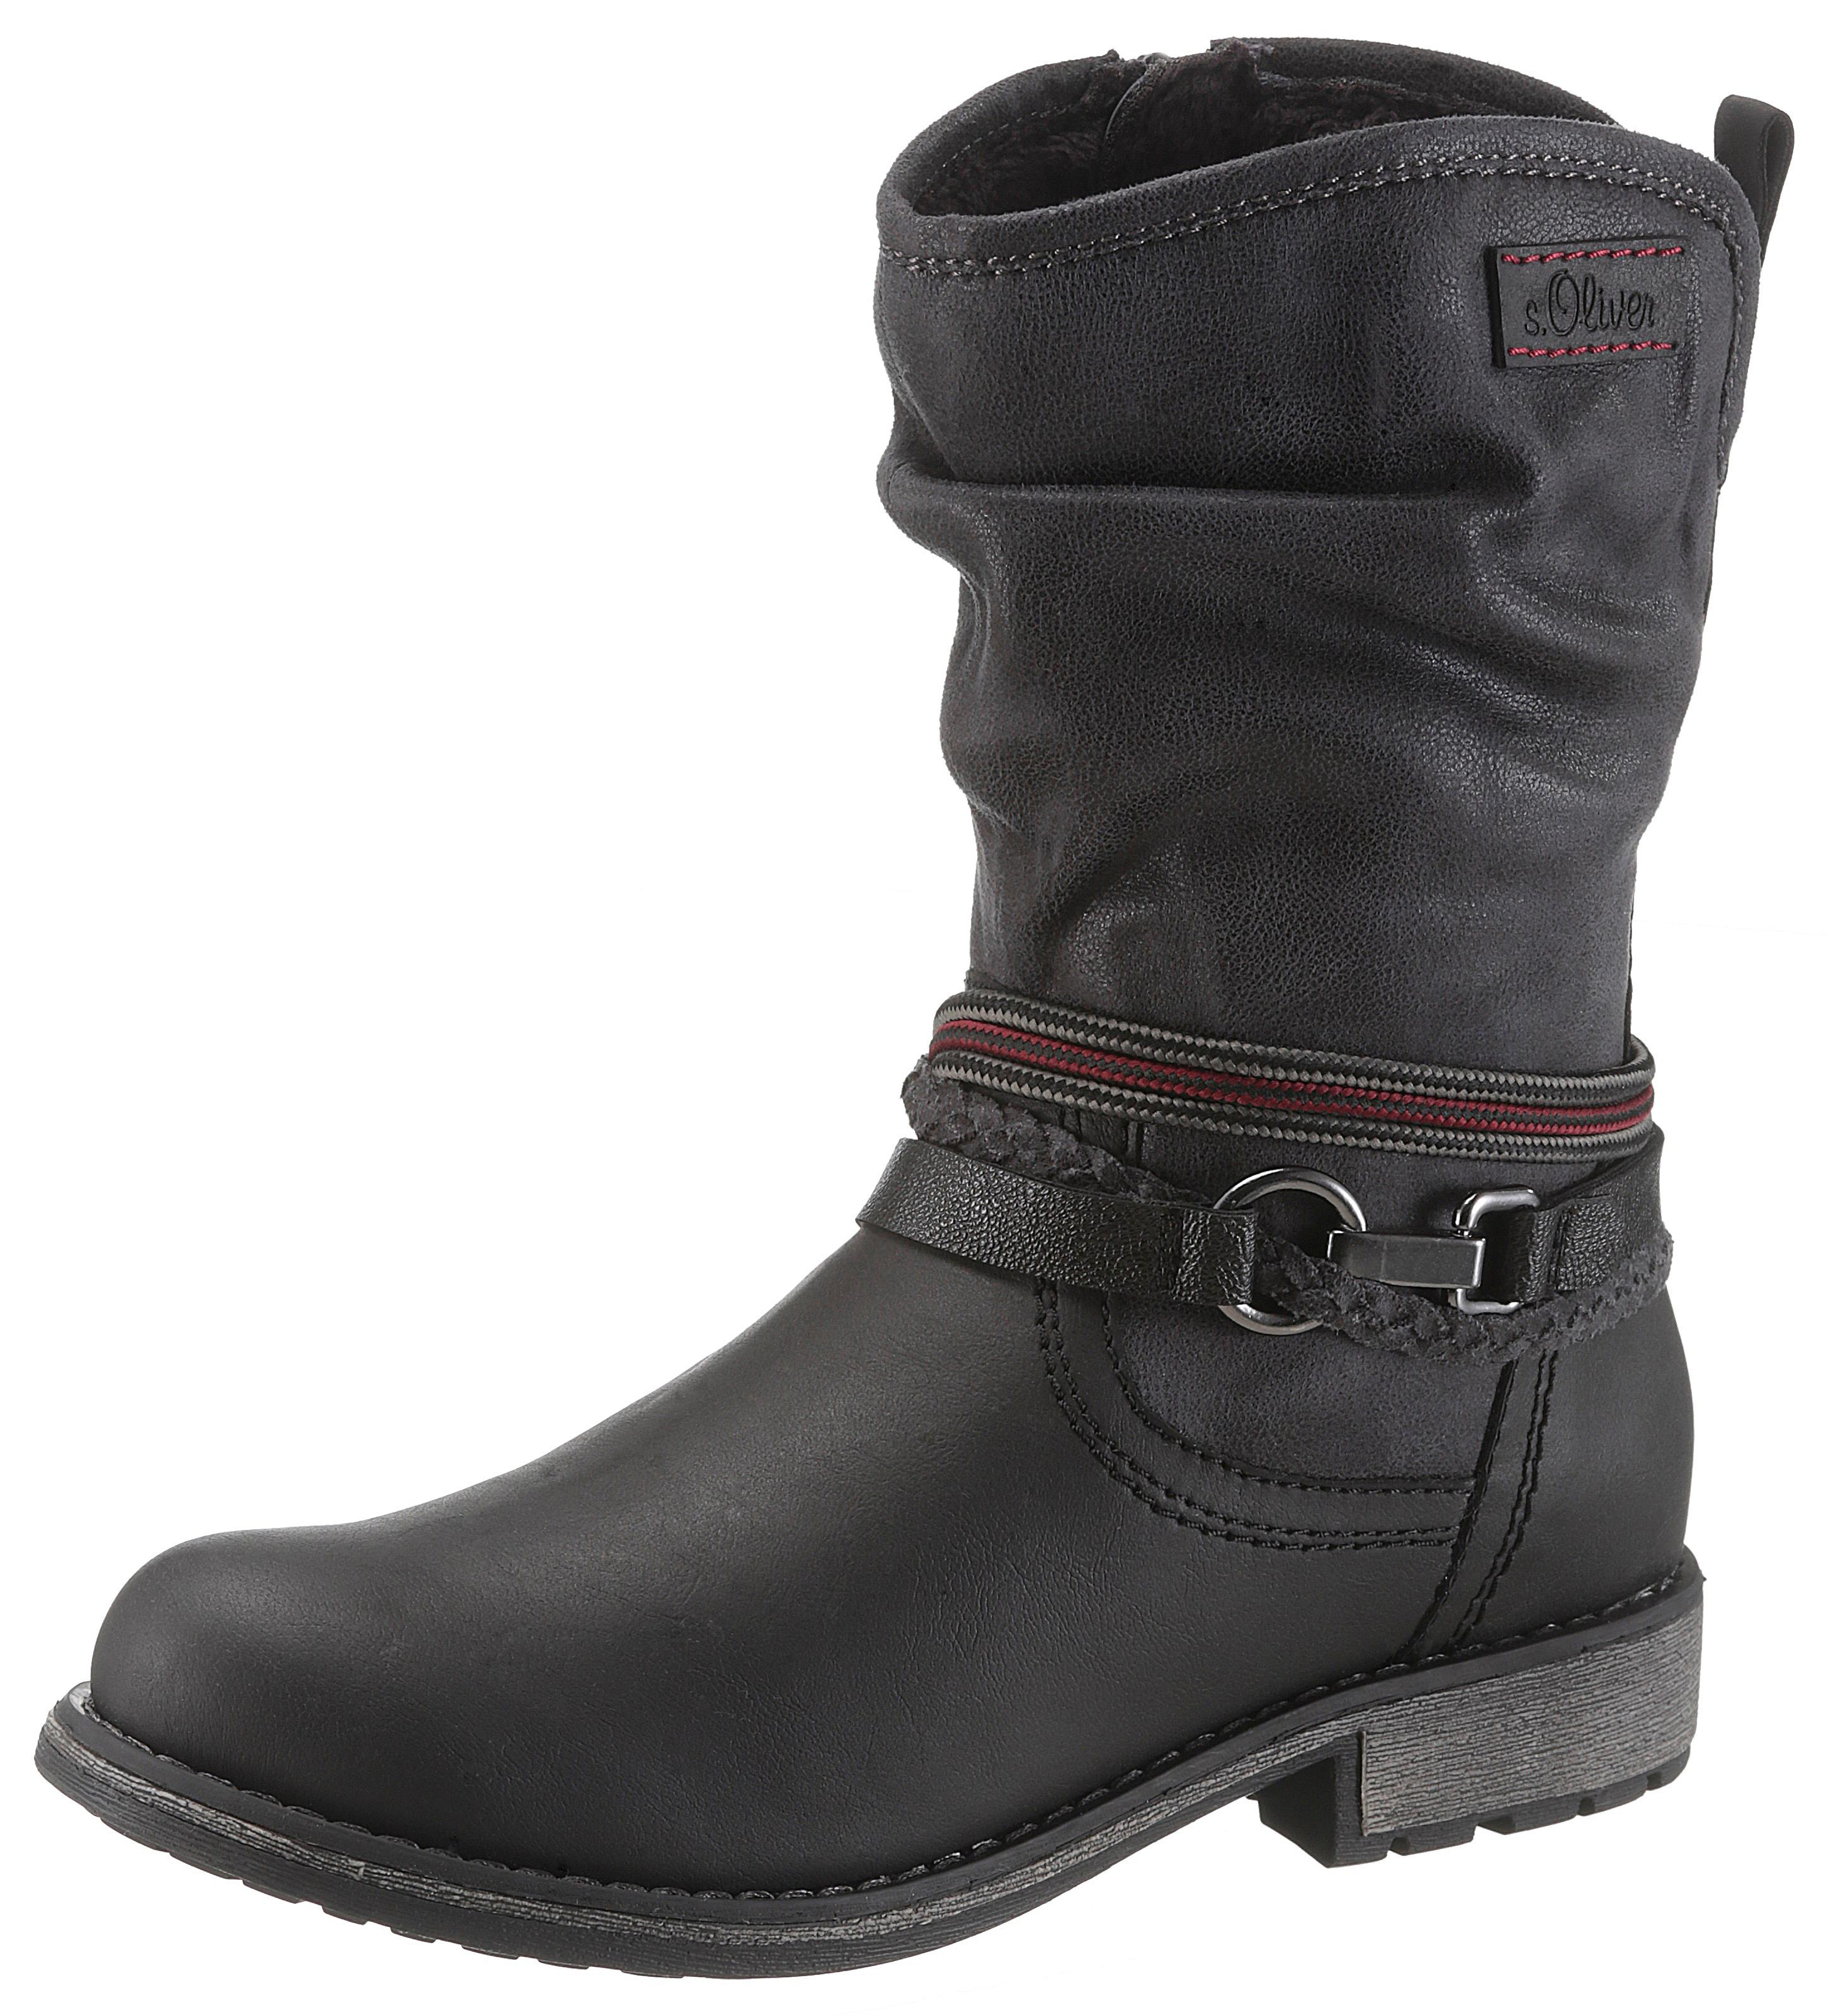 sOliver RED LABEL Bikerboots | Schuhe > Boots > Bikerboots | Schwarz | S.Oliver Red Label